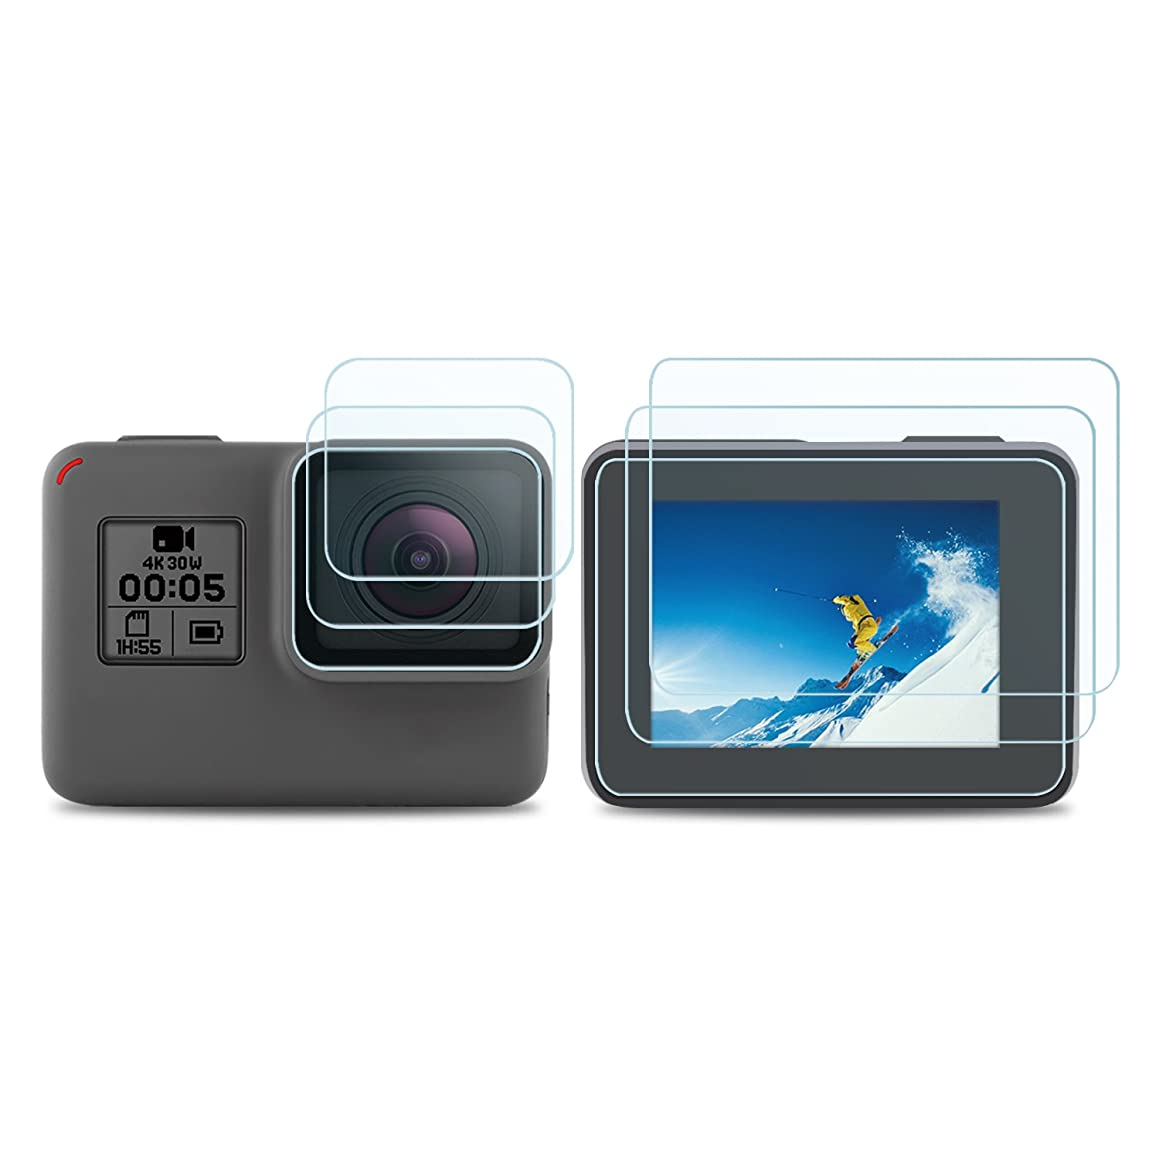 iTrunk Screen Protector Compatible for GoPro Hero Hero 7 Black (2018) / 6/5, LCD Display Screen Protector Lens Protector Film Compatible for GoPro Hero7 Hero (2018) Hero6 Hero5 Black k76991254912